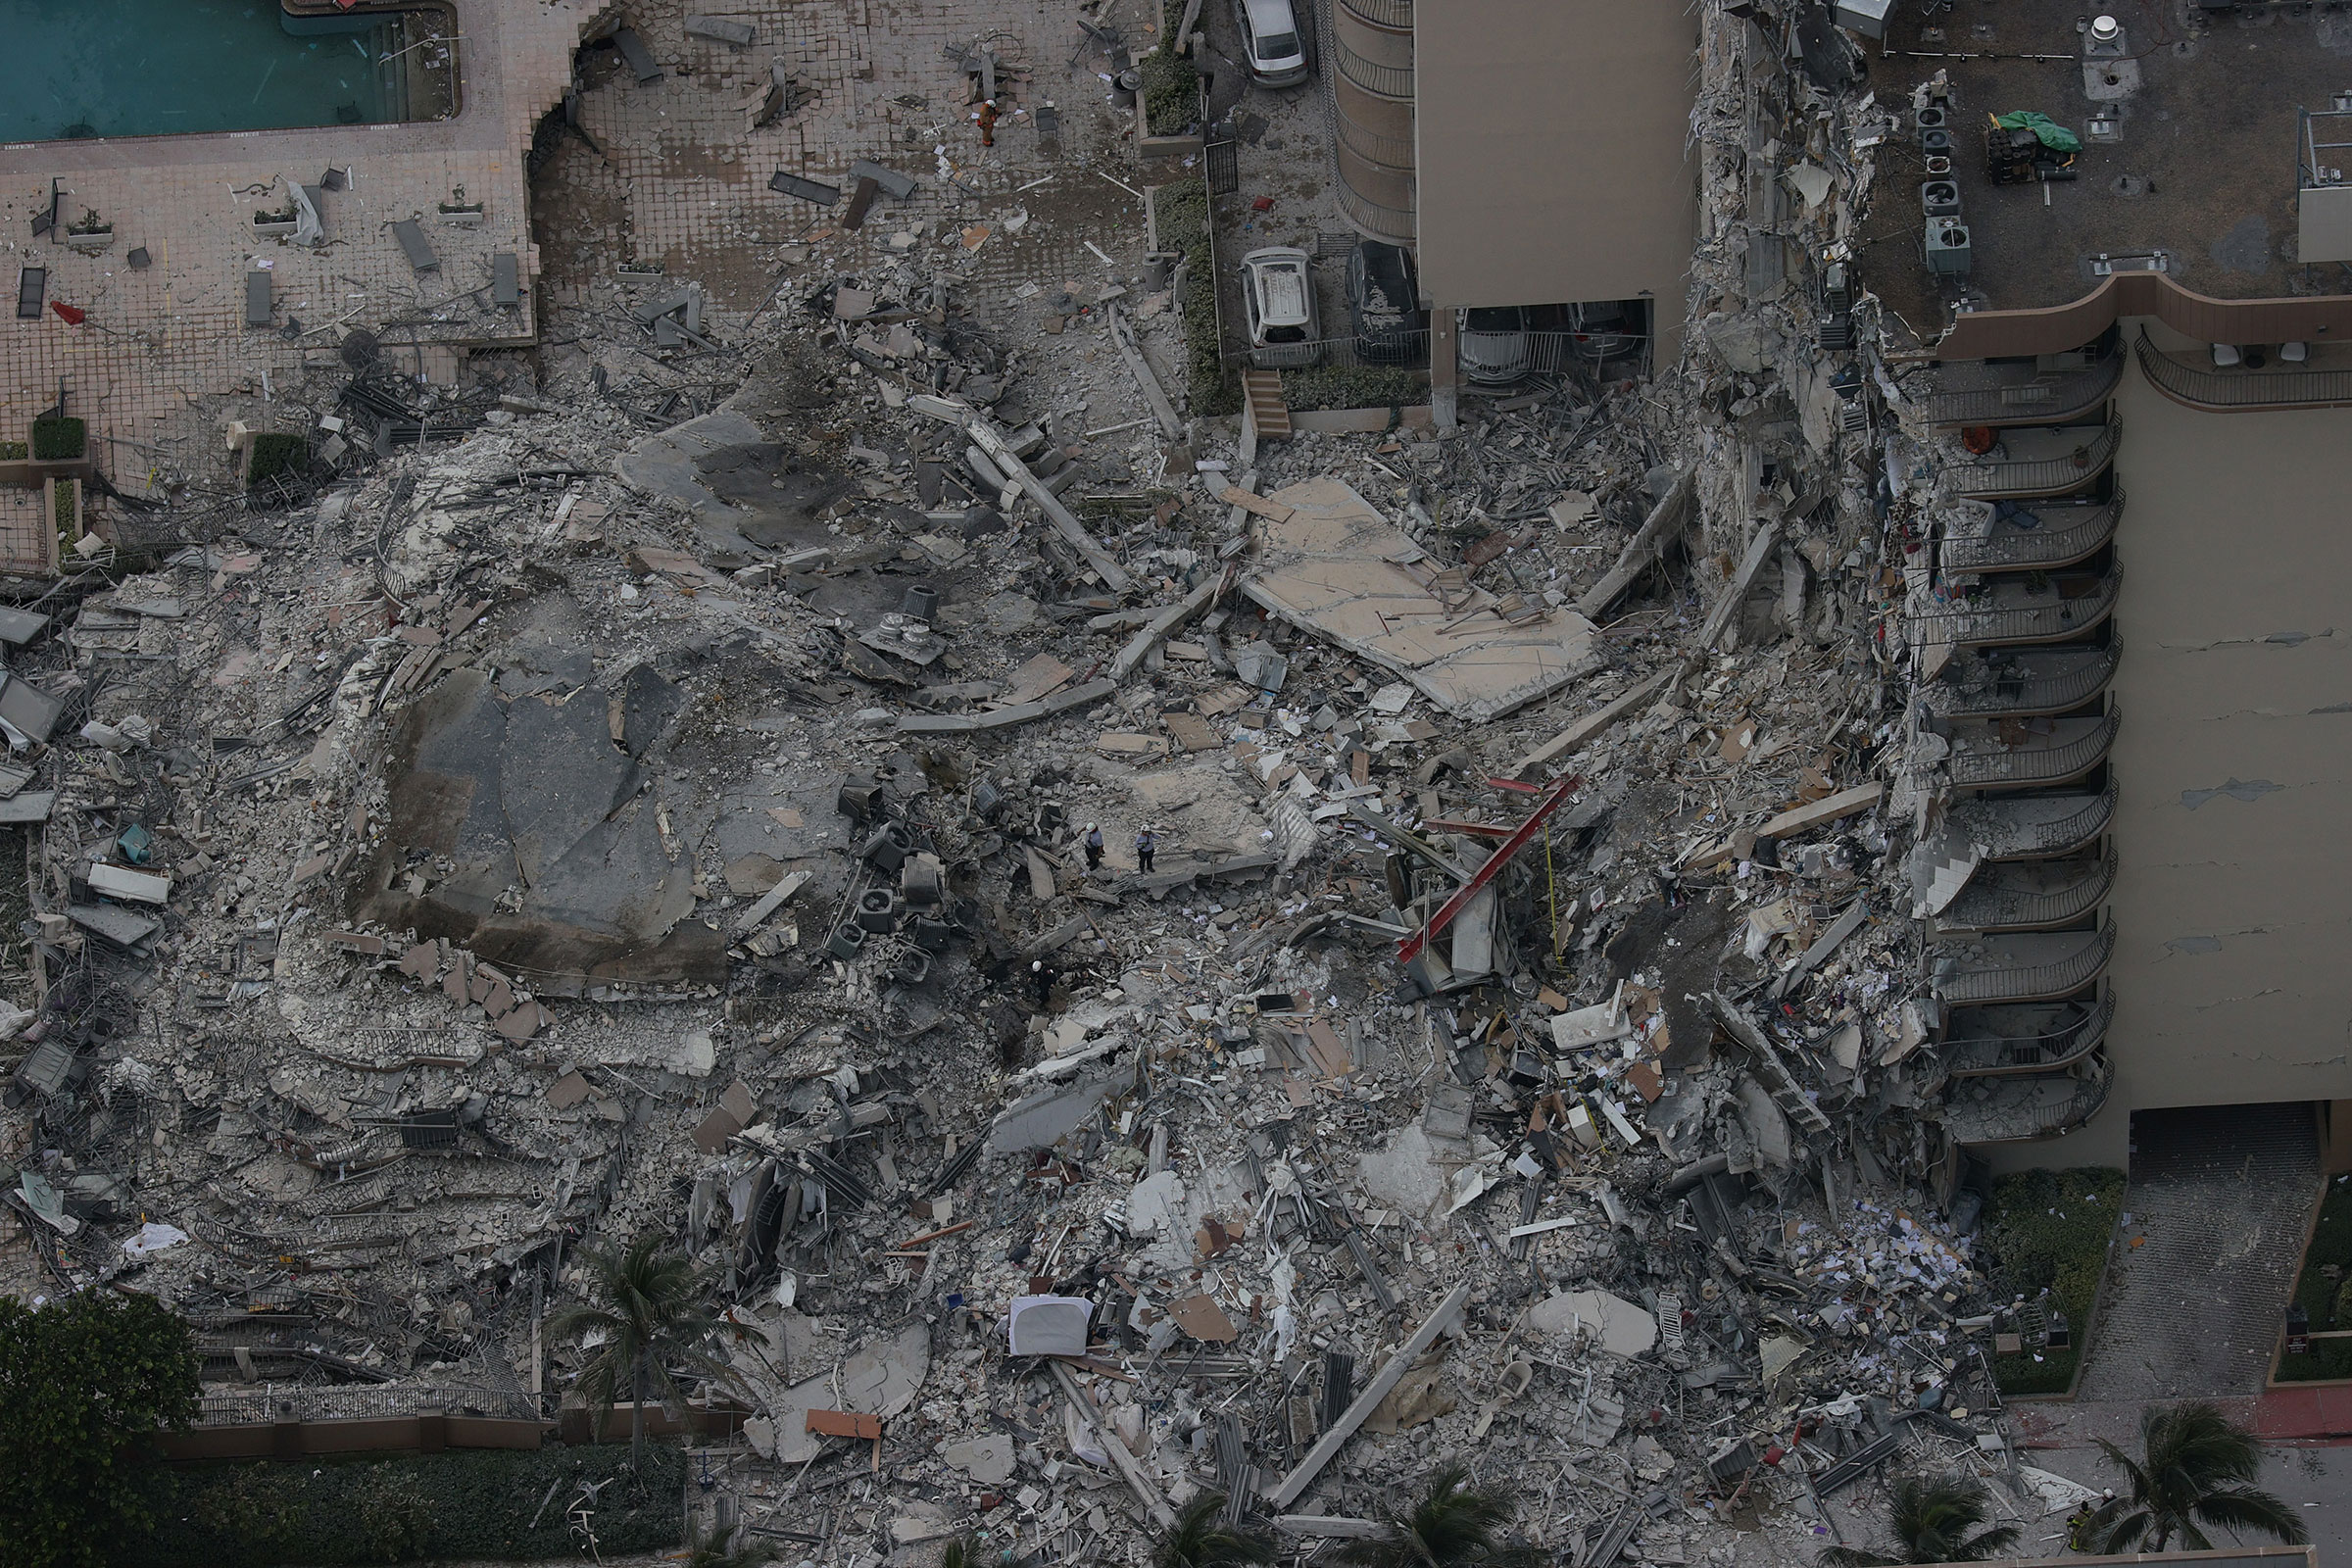 Search and rescue personnel work in the rubble of the 12-story condo tower that crumbled to the ground in Surfside on June 24, 2021.